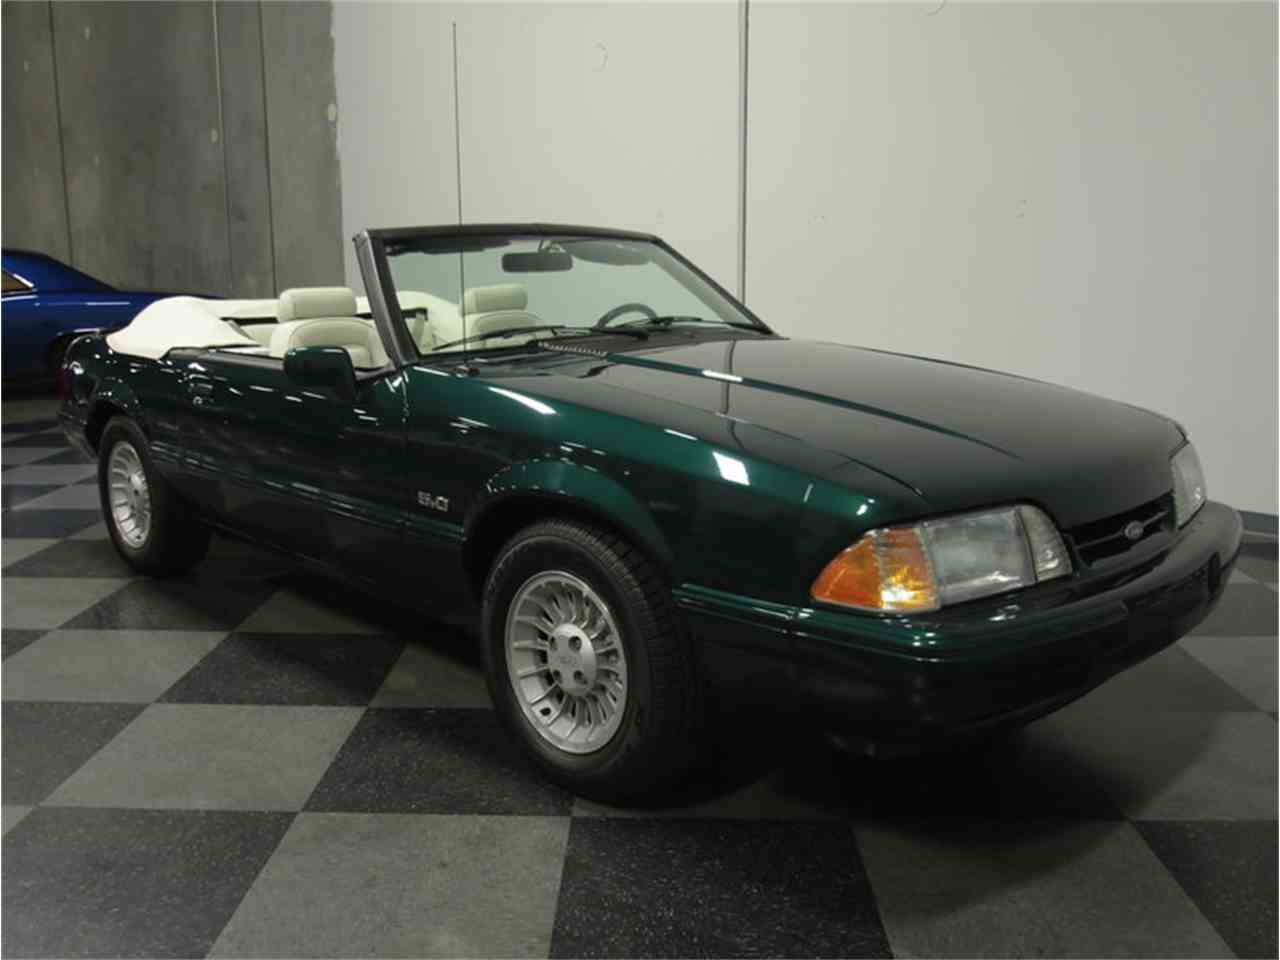 Large Picture of 1990 Mustang LX 7-UP Edition located in Lithia Springs Georgia - $12,995.00 - IRSA